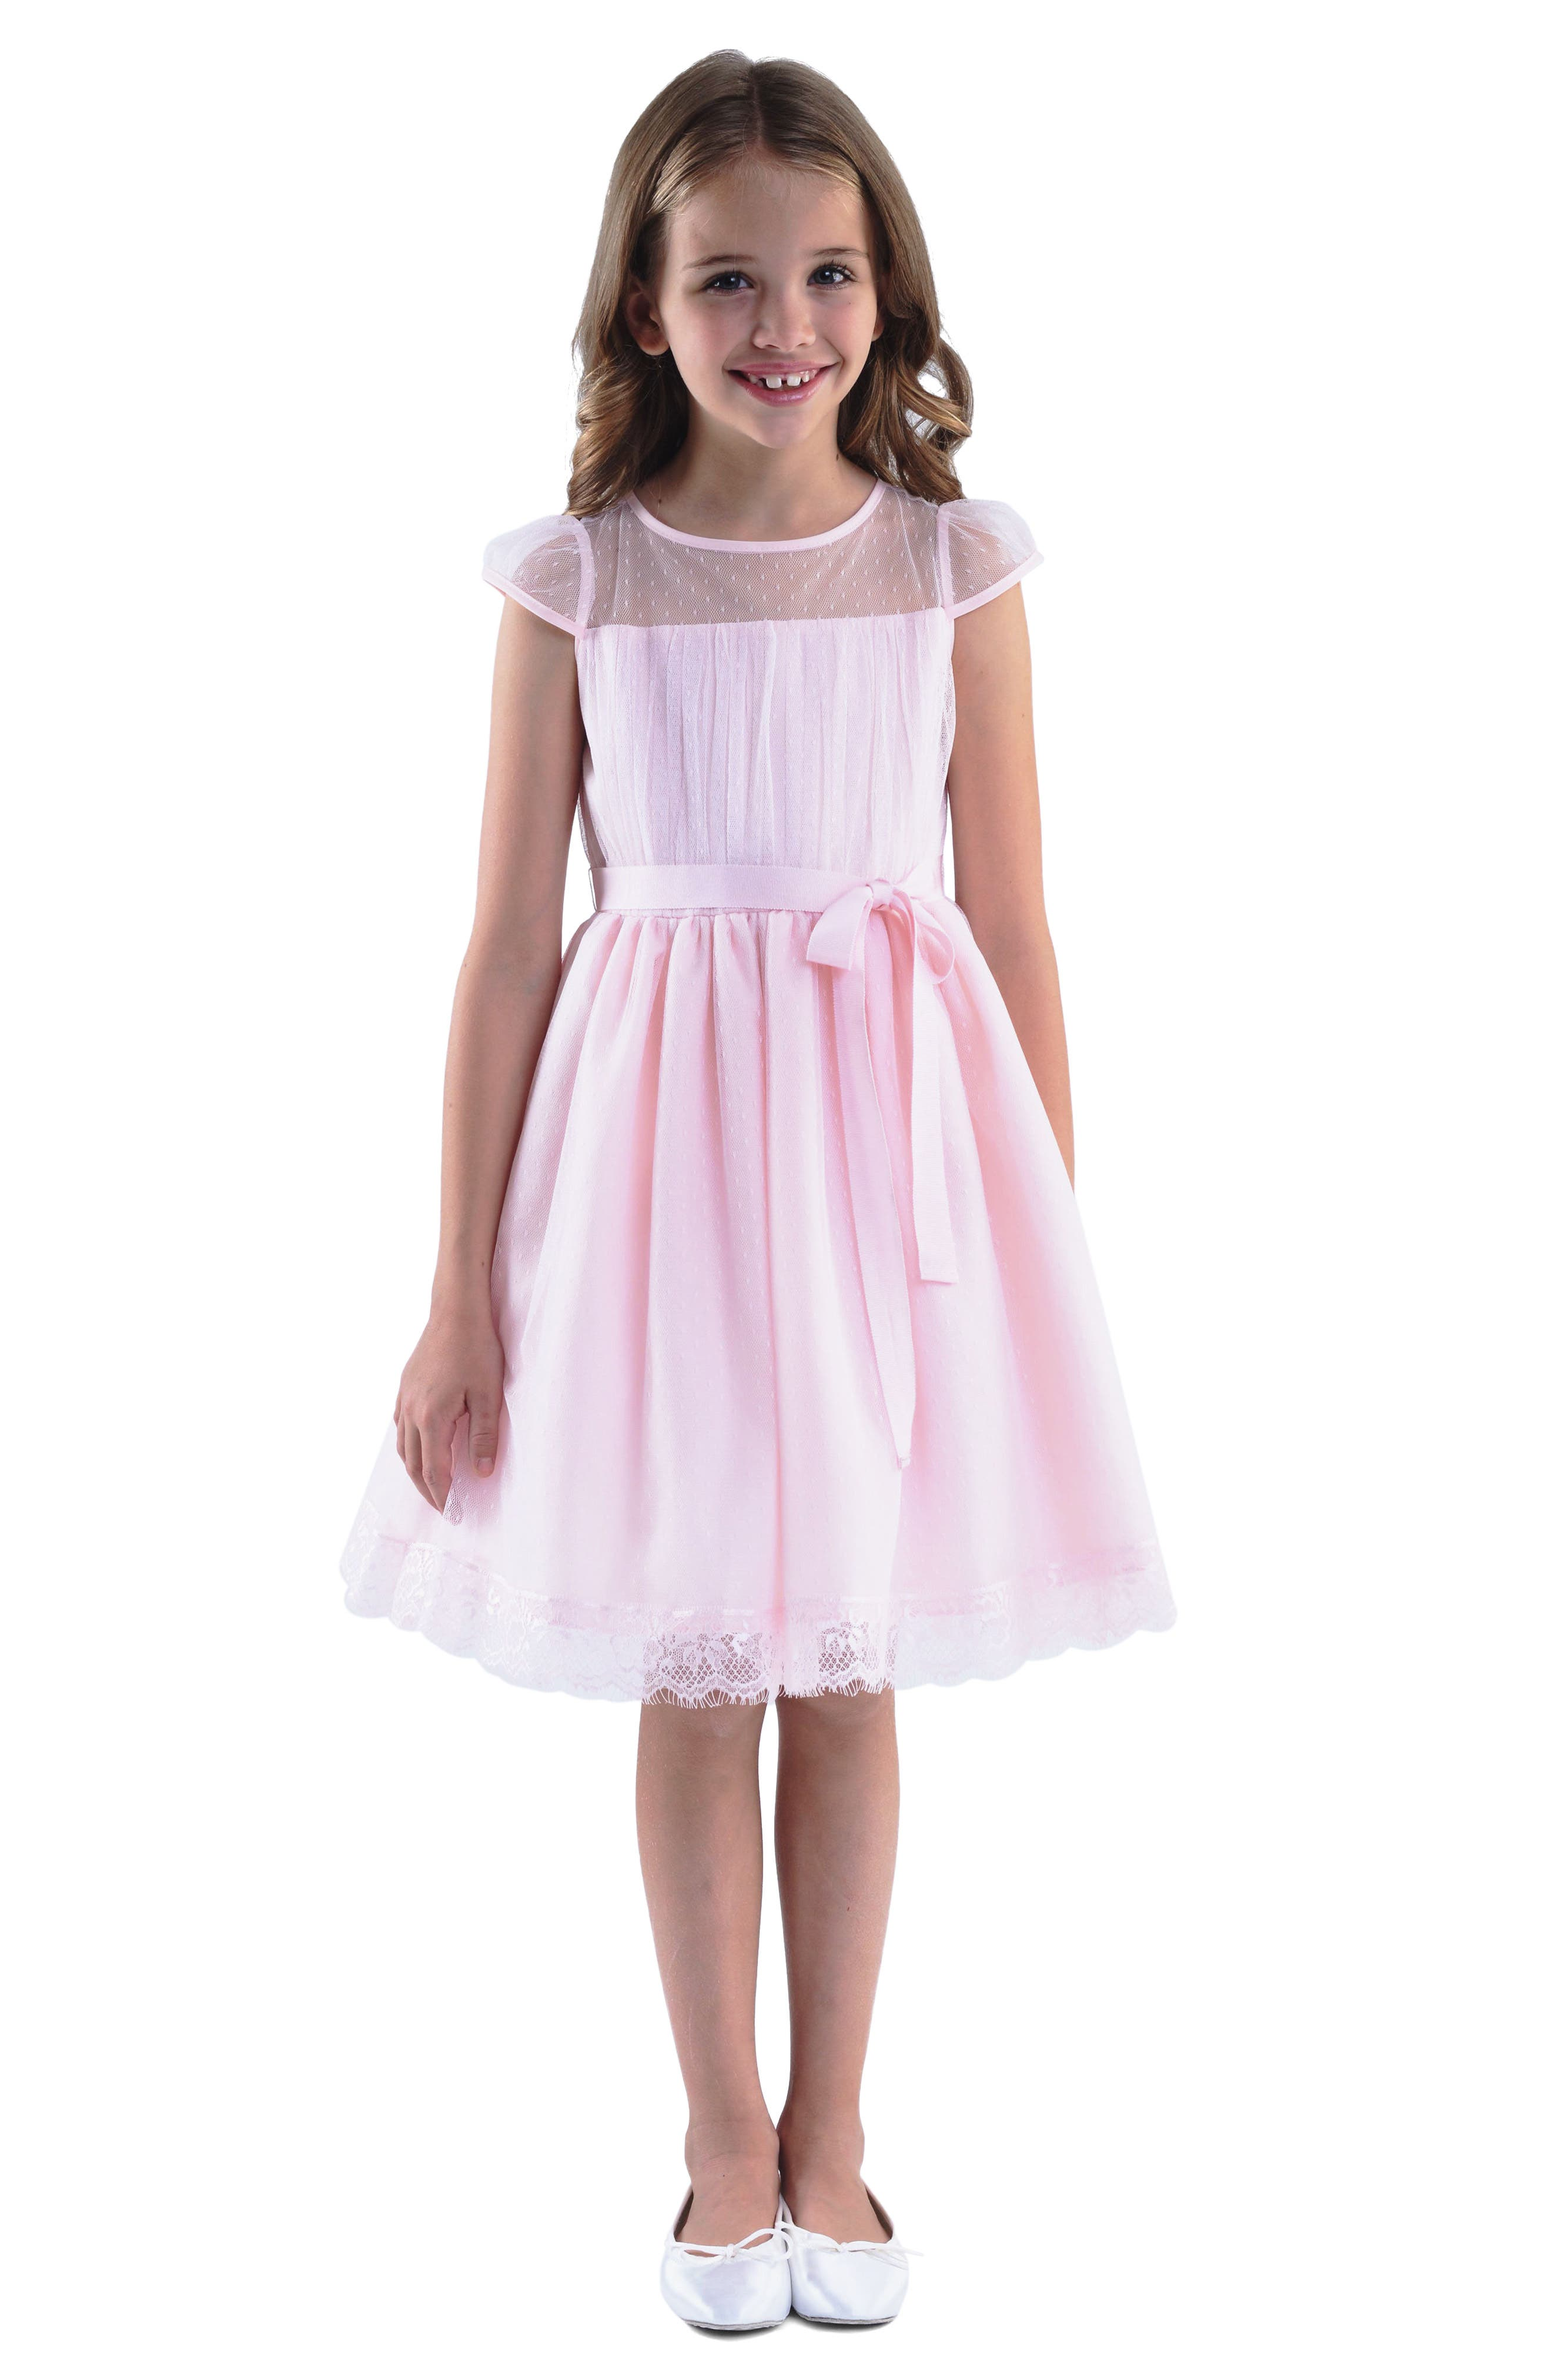 Little Girl Dresses For Special Occasions – Reviews - Adorable Children's Clothing & Accessories